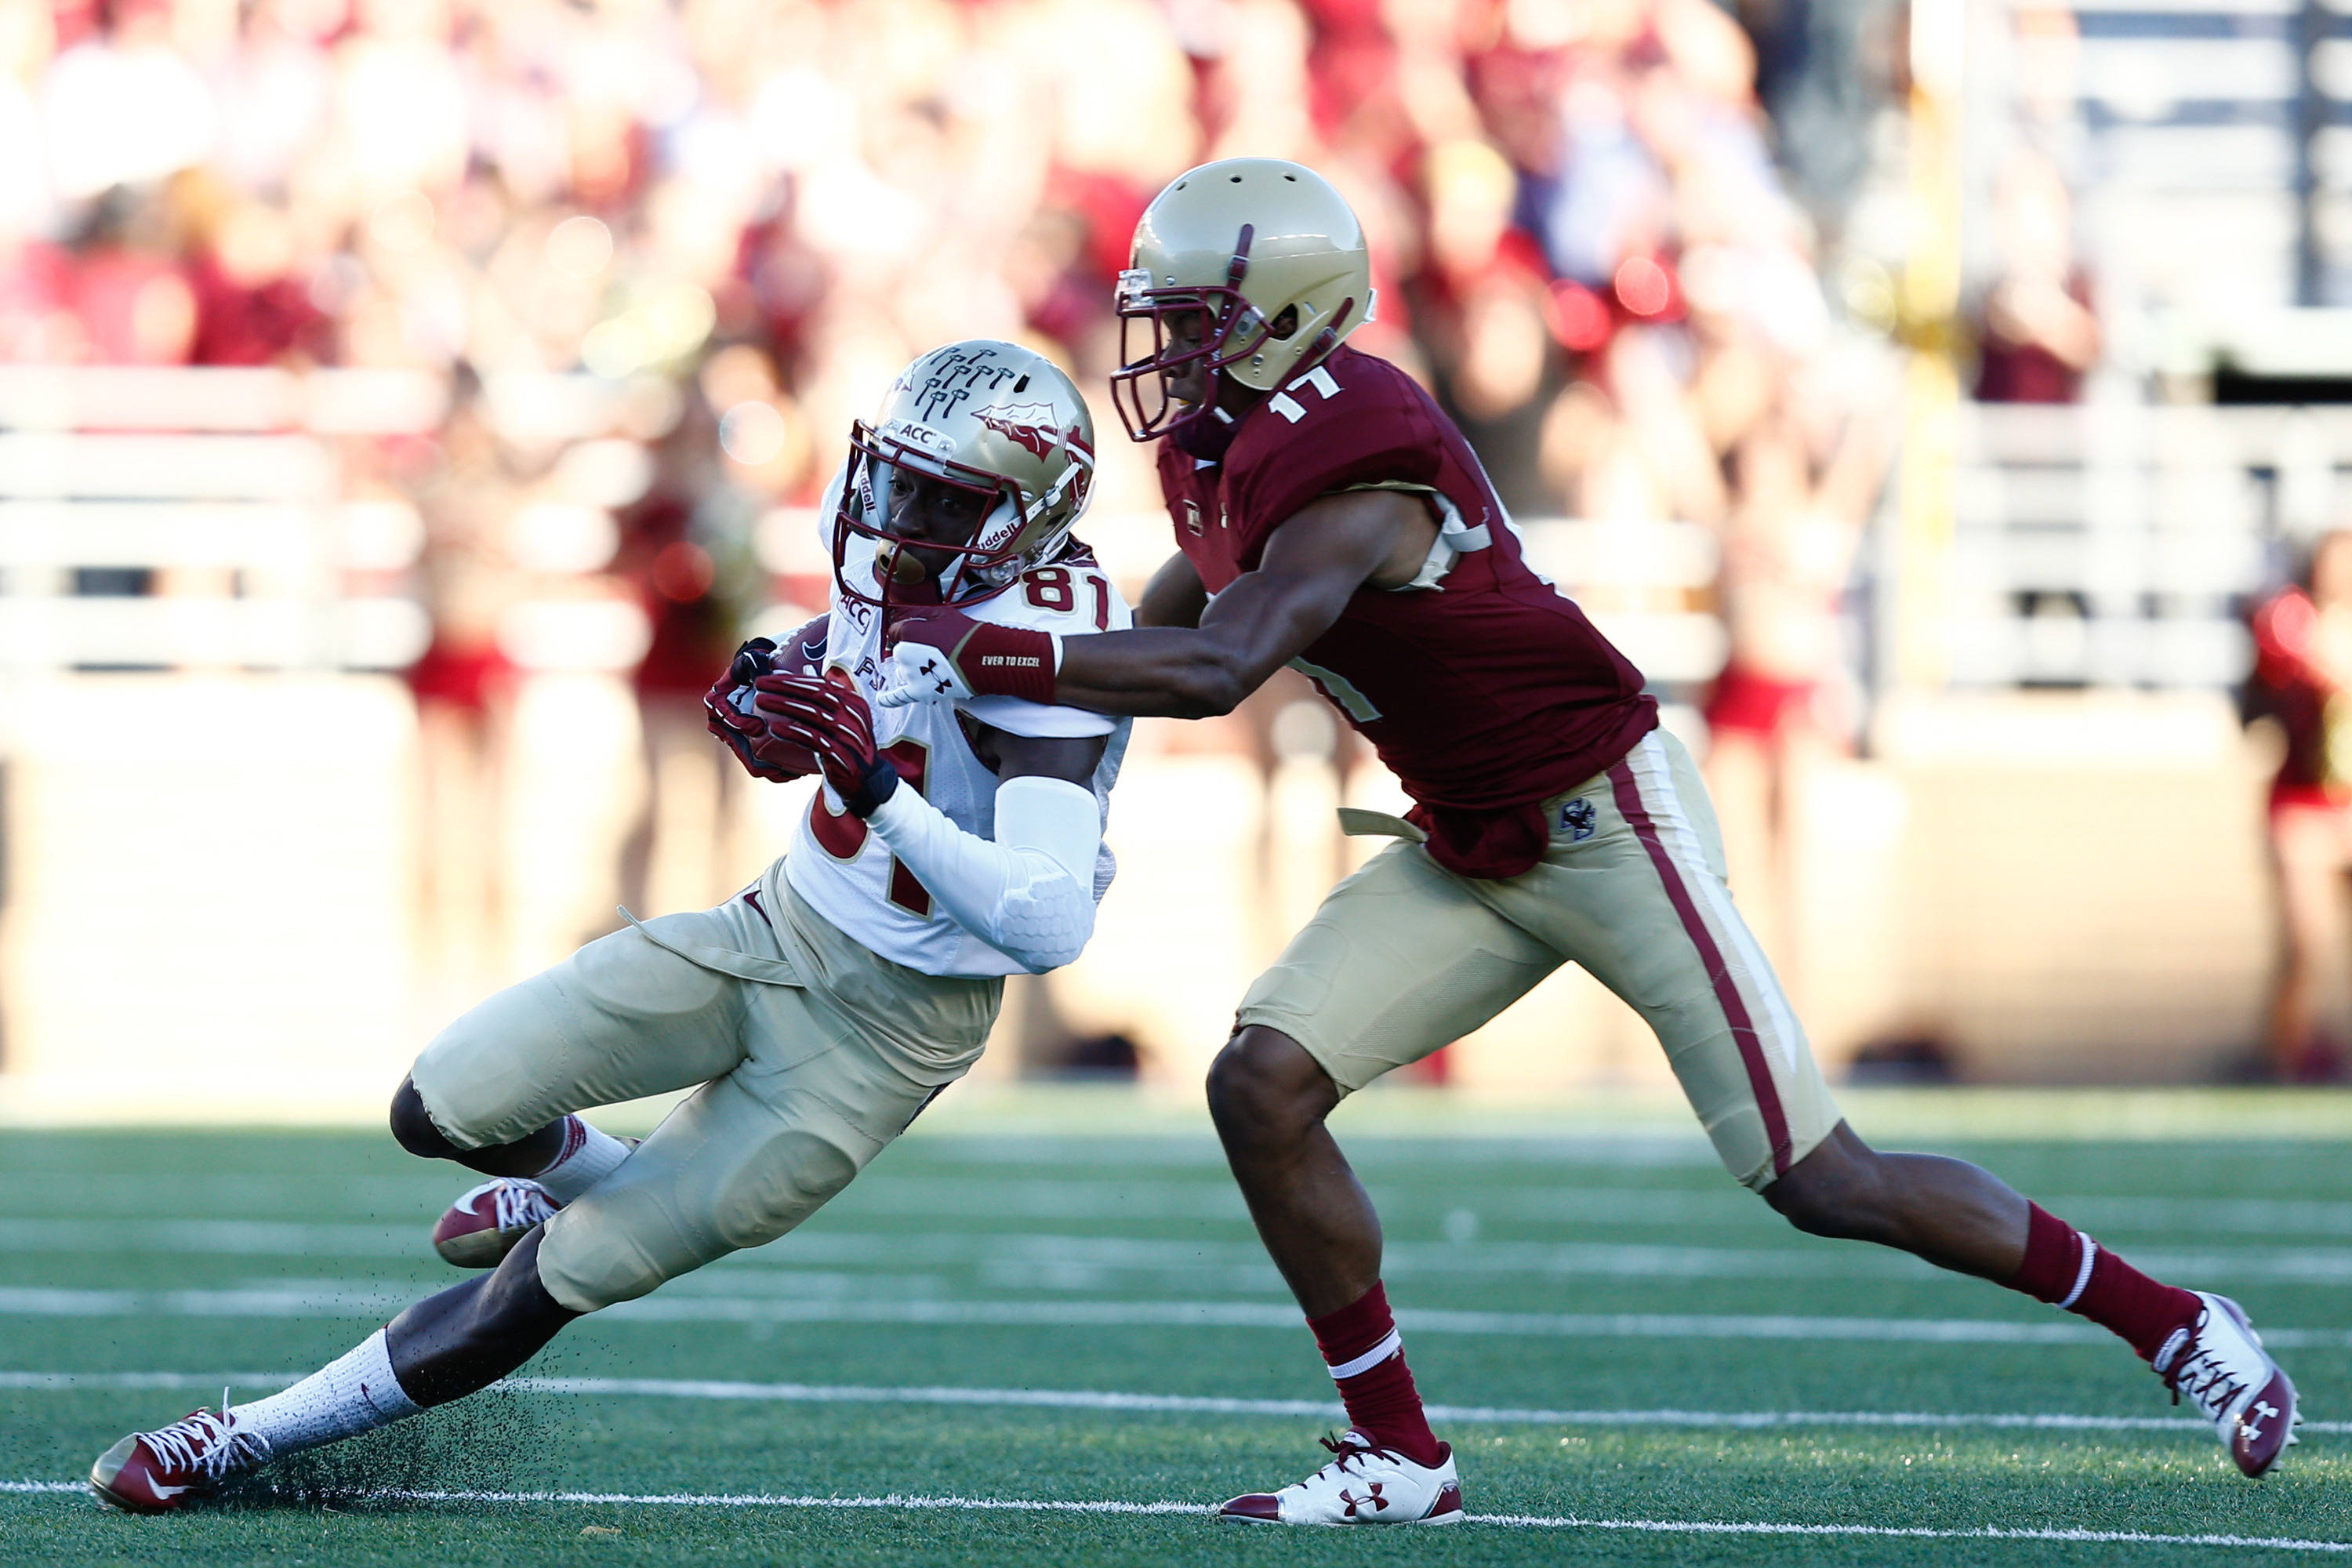 Kenny Shaw (81) carries the ball against Boston College Eagles defensive back Bryce Jones (17). Mandatory Credit: Mark L. Baer-USA TODAY Sports